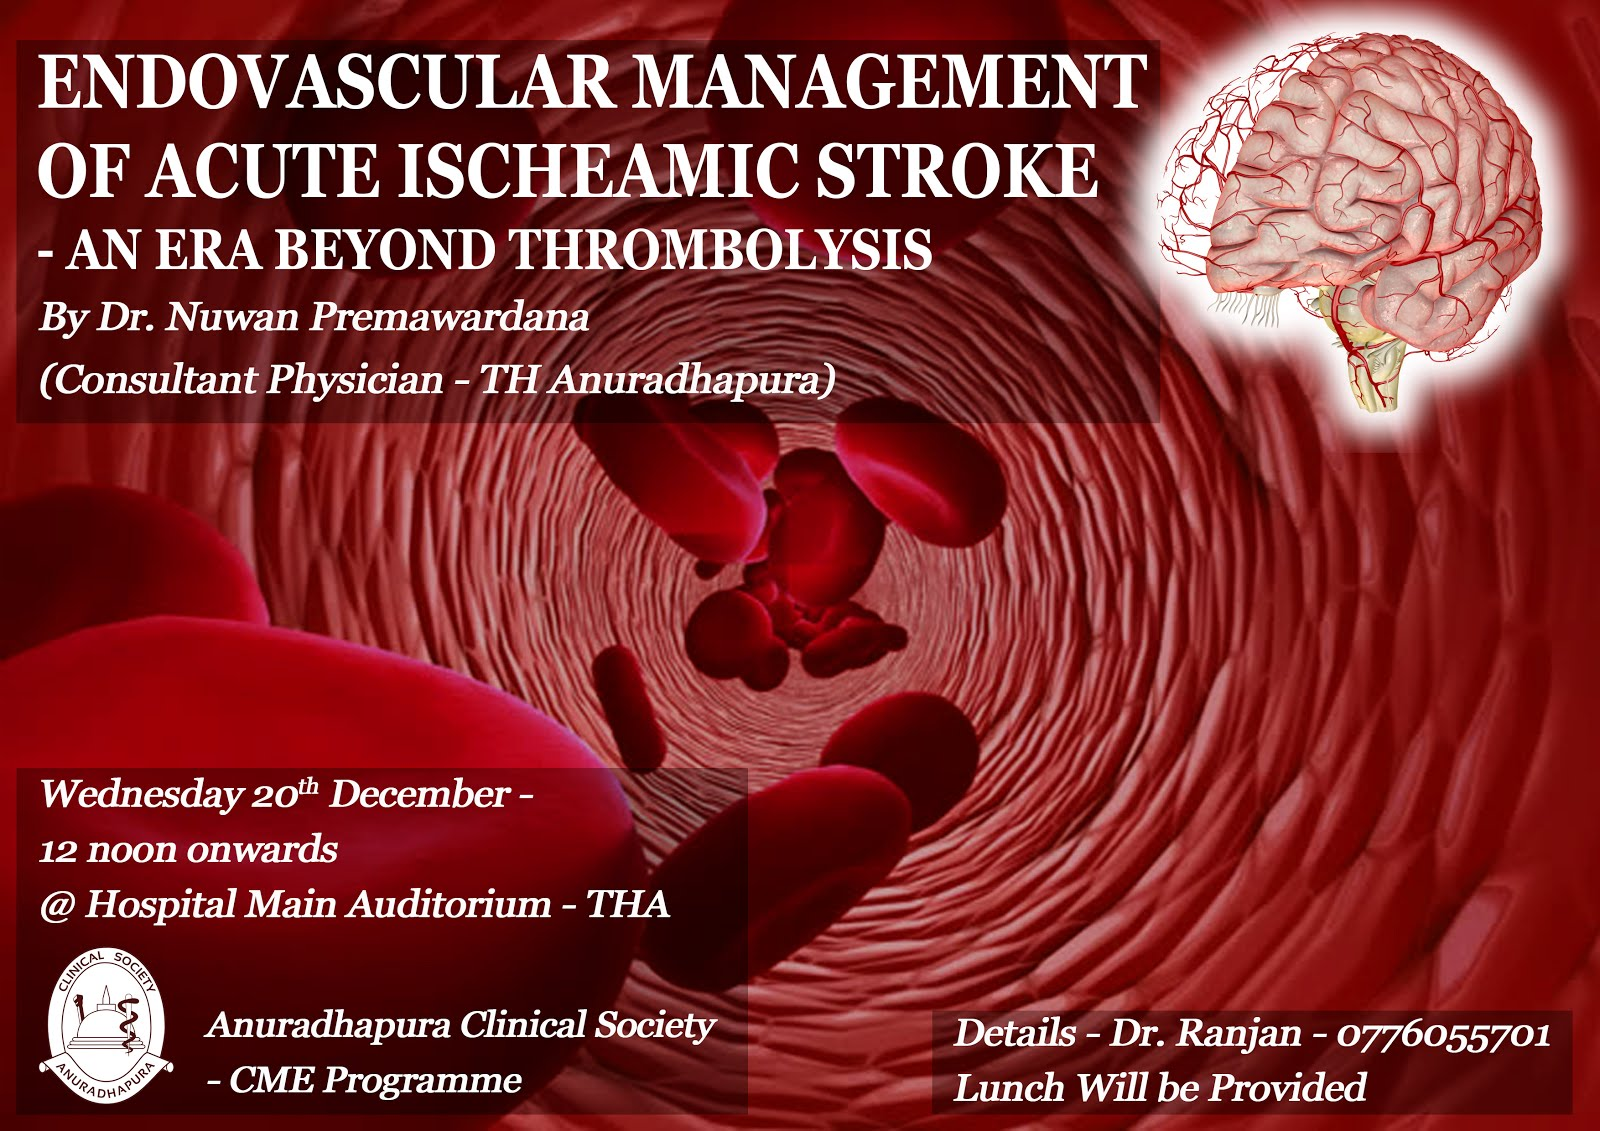 CME Lecture - Endovascular Management Of Acute Ischeamic Stroke - An Era Beyond Thrombolysis